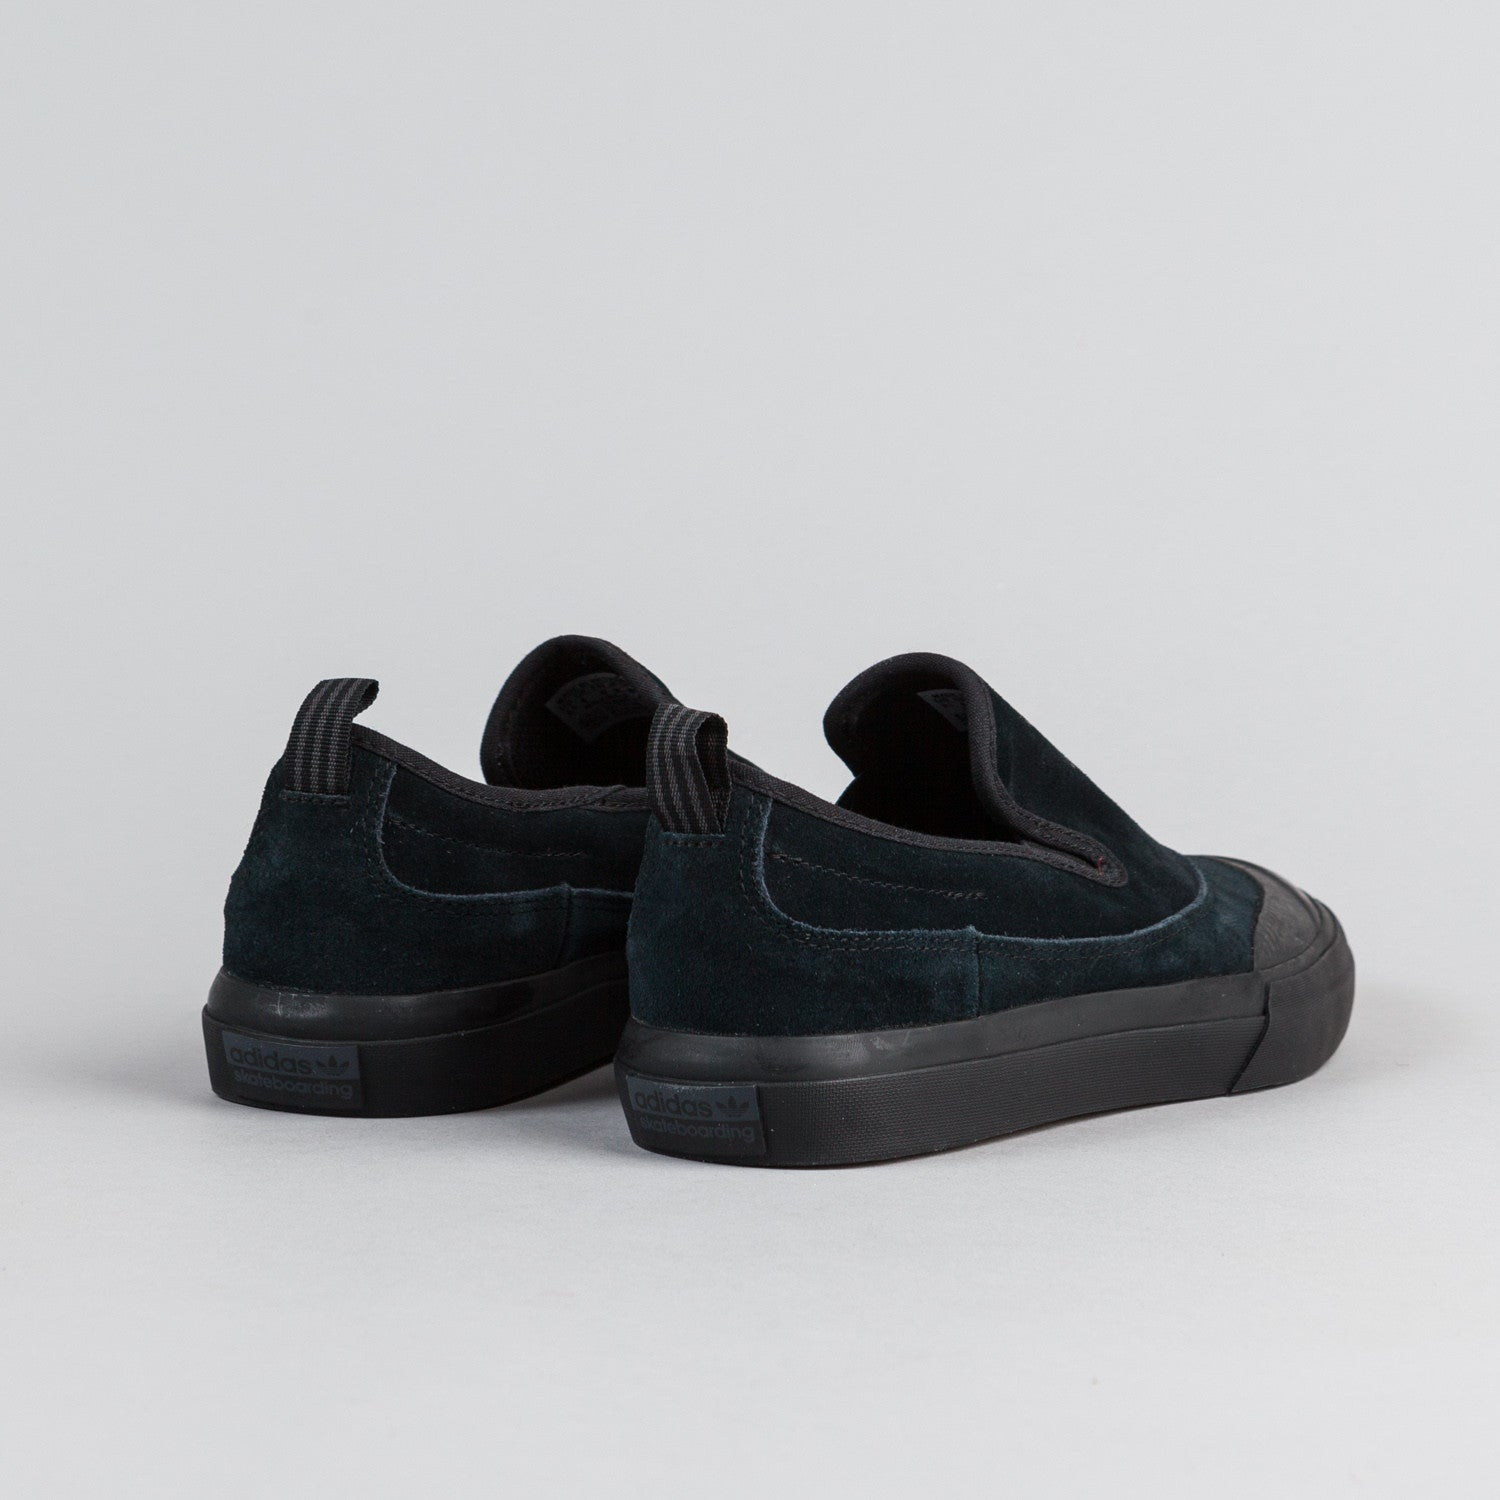 Adidas Matchcourt Slip On Shoes - Core Black / Core Black / Solid Grey